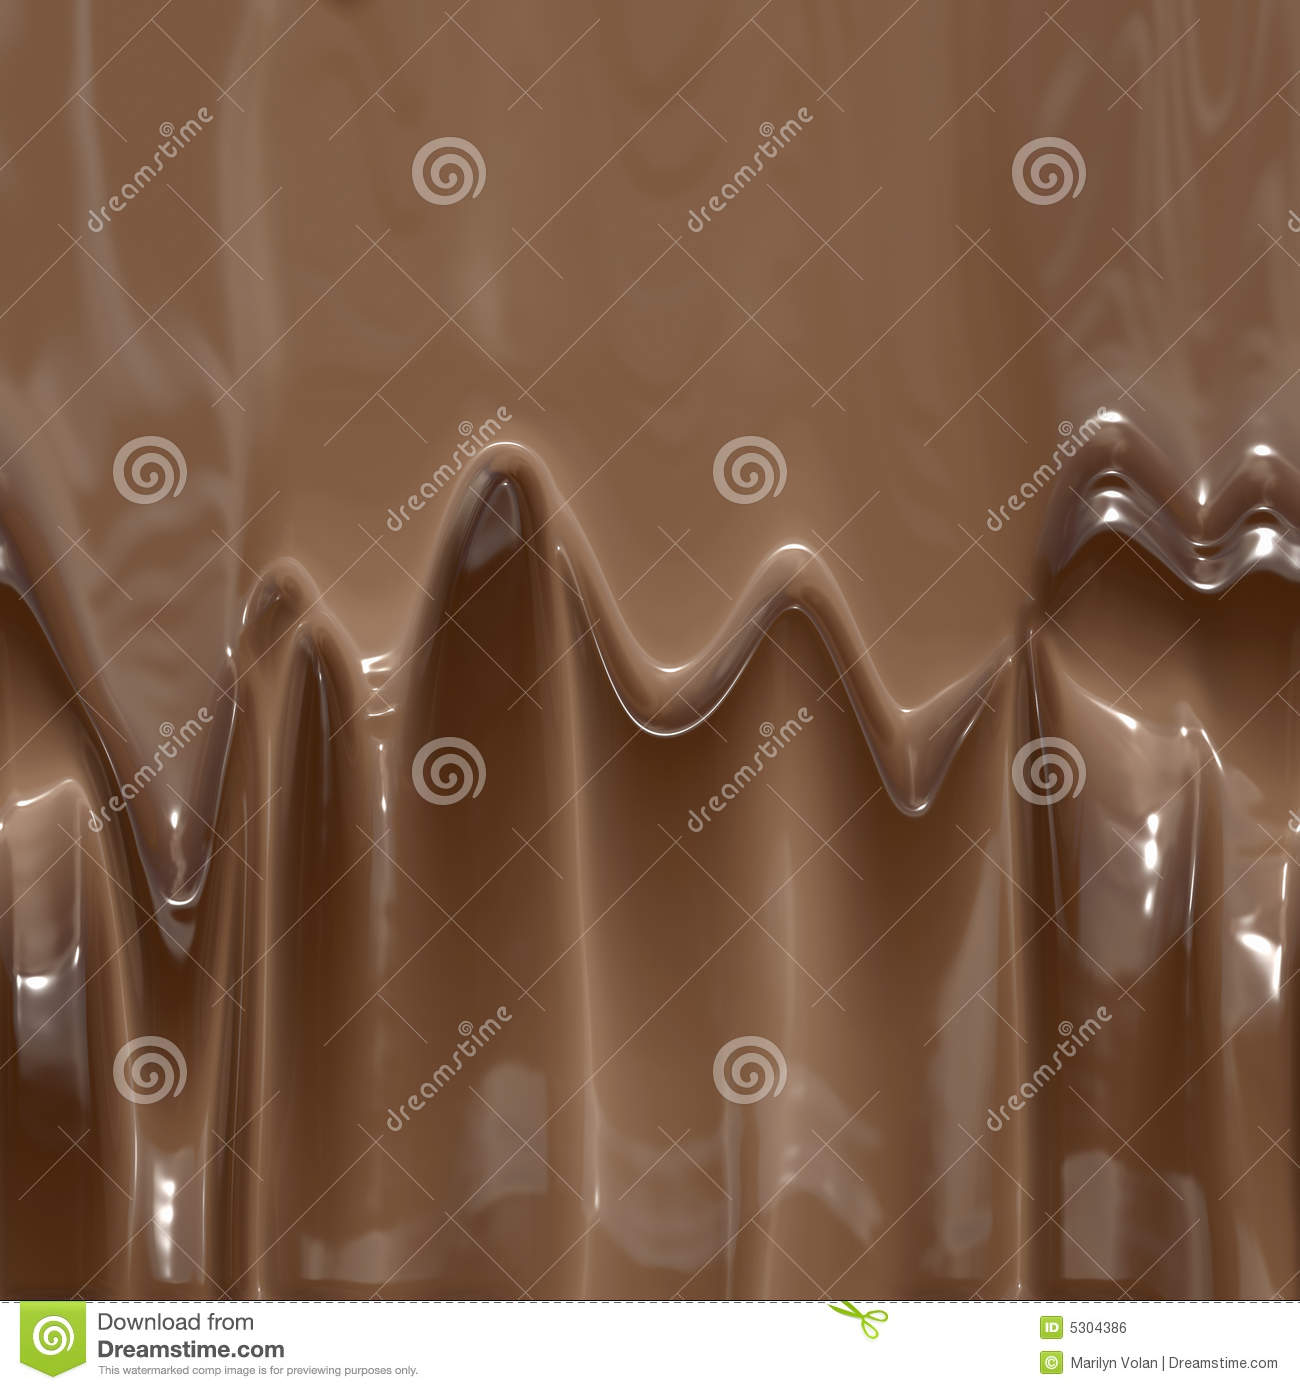 Rich, very smoo... Dripping Chocolate Background